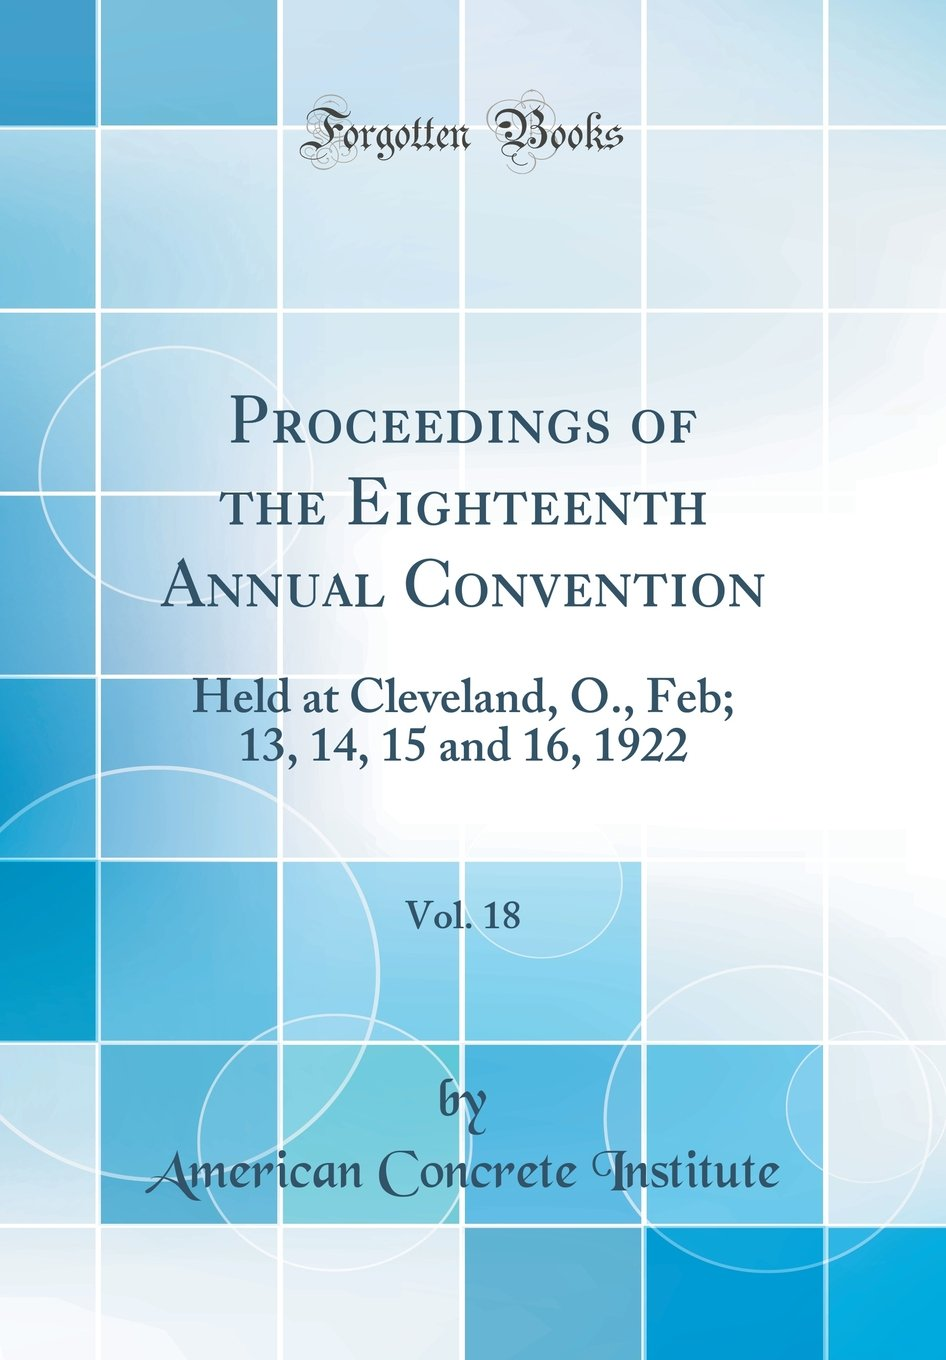 Proceedings of the Eighteenth Annual Convention, Vol. 18: Held at Cleveland, O., Feb; 13, 14, 15 and 16, 1922 (Classic Reprint) pdf epub